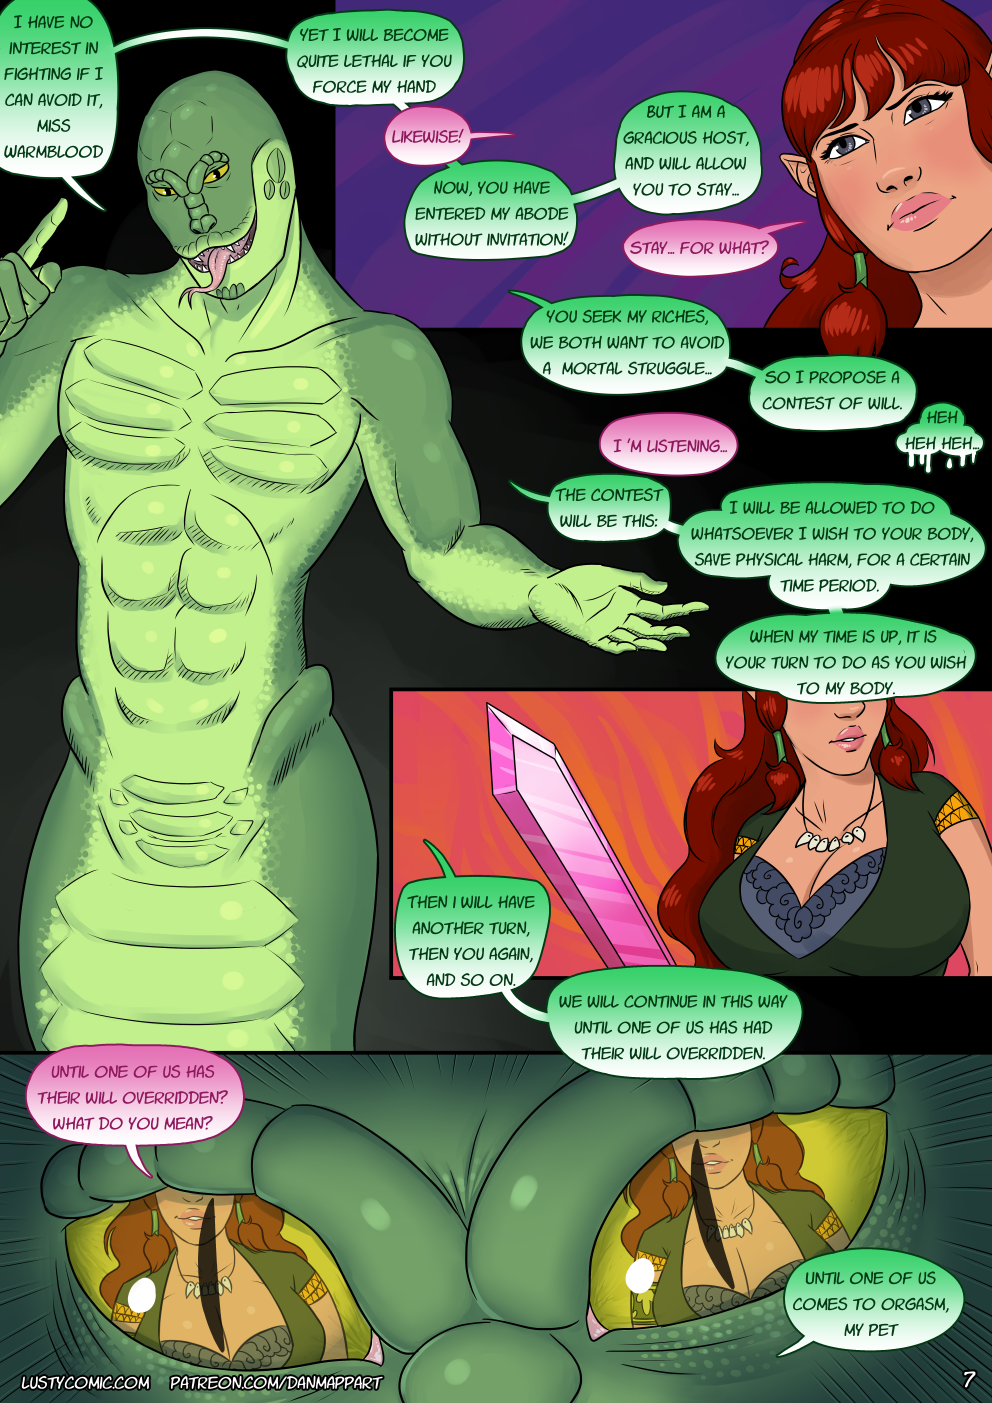 What's that? You love walls of text in a comic? You got it, buddy!